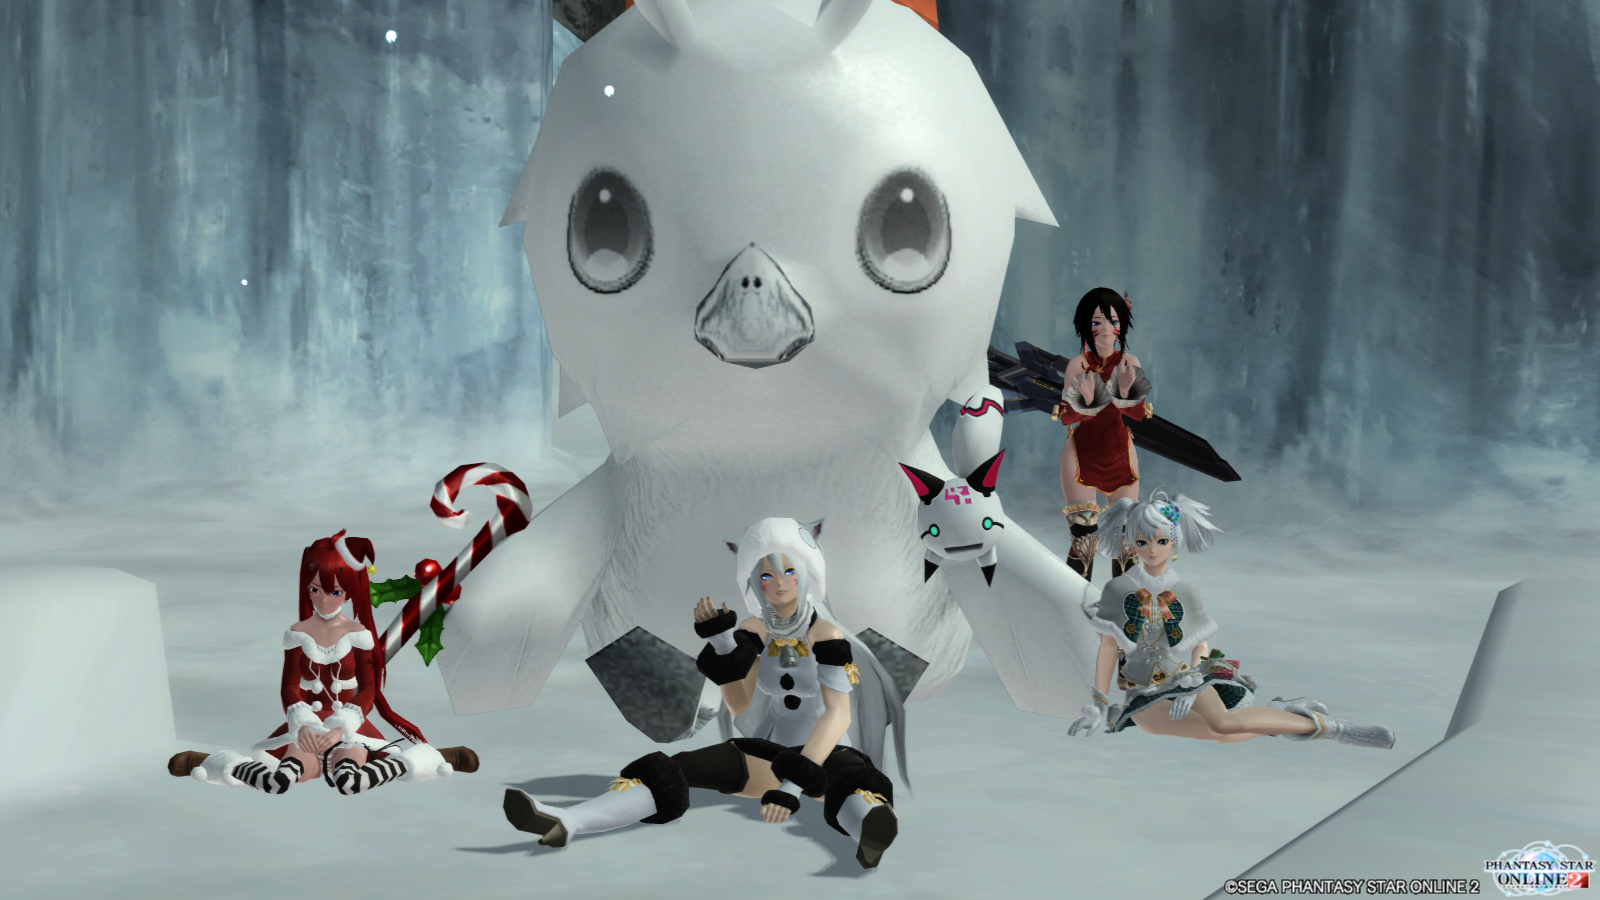 pso20151213_211407_009.png